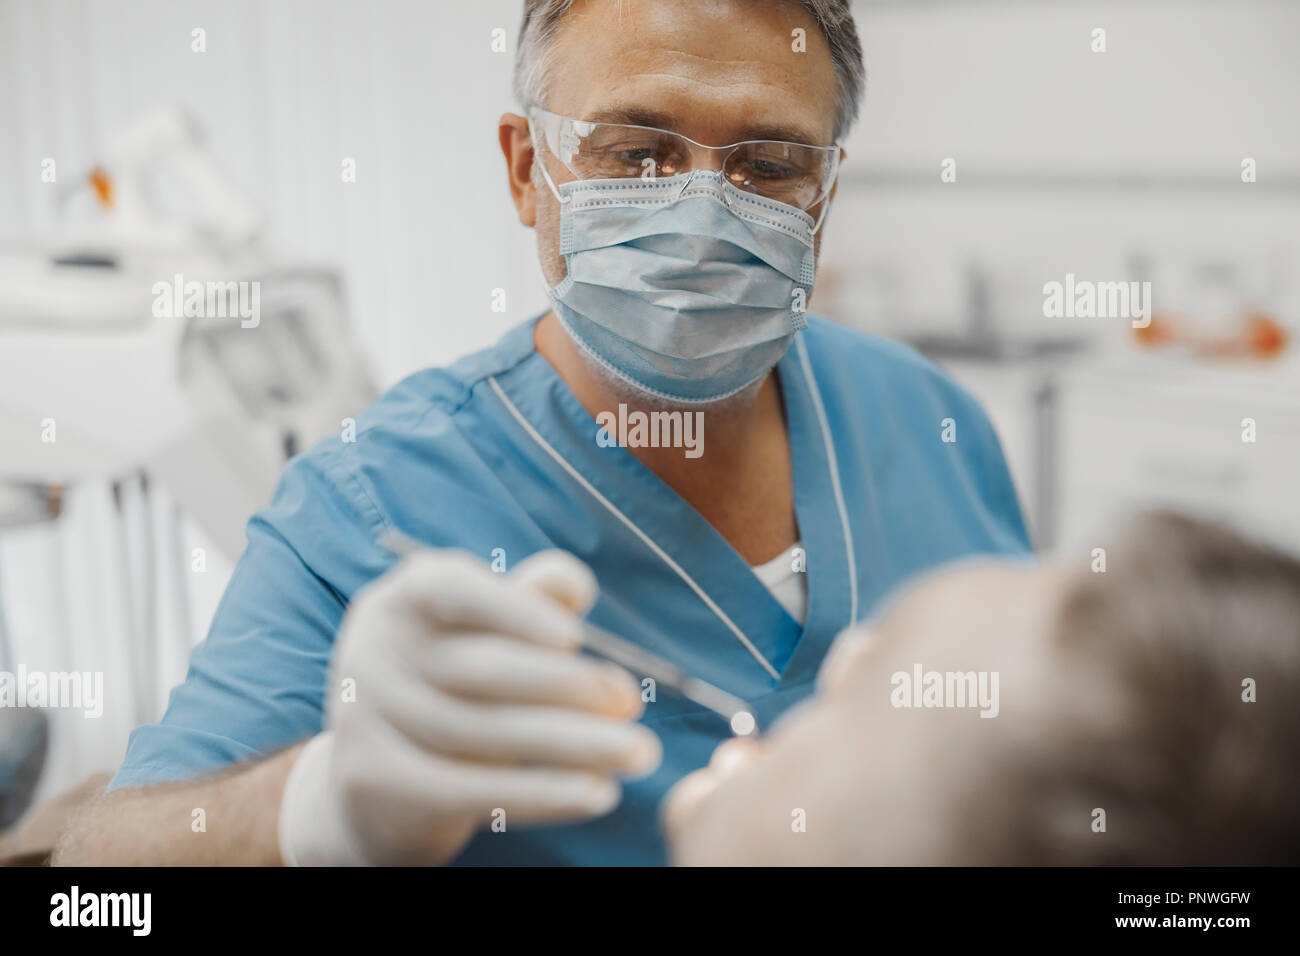 Close up of dentist in blue uniform checking up client teeth health condition. - Stock Image